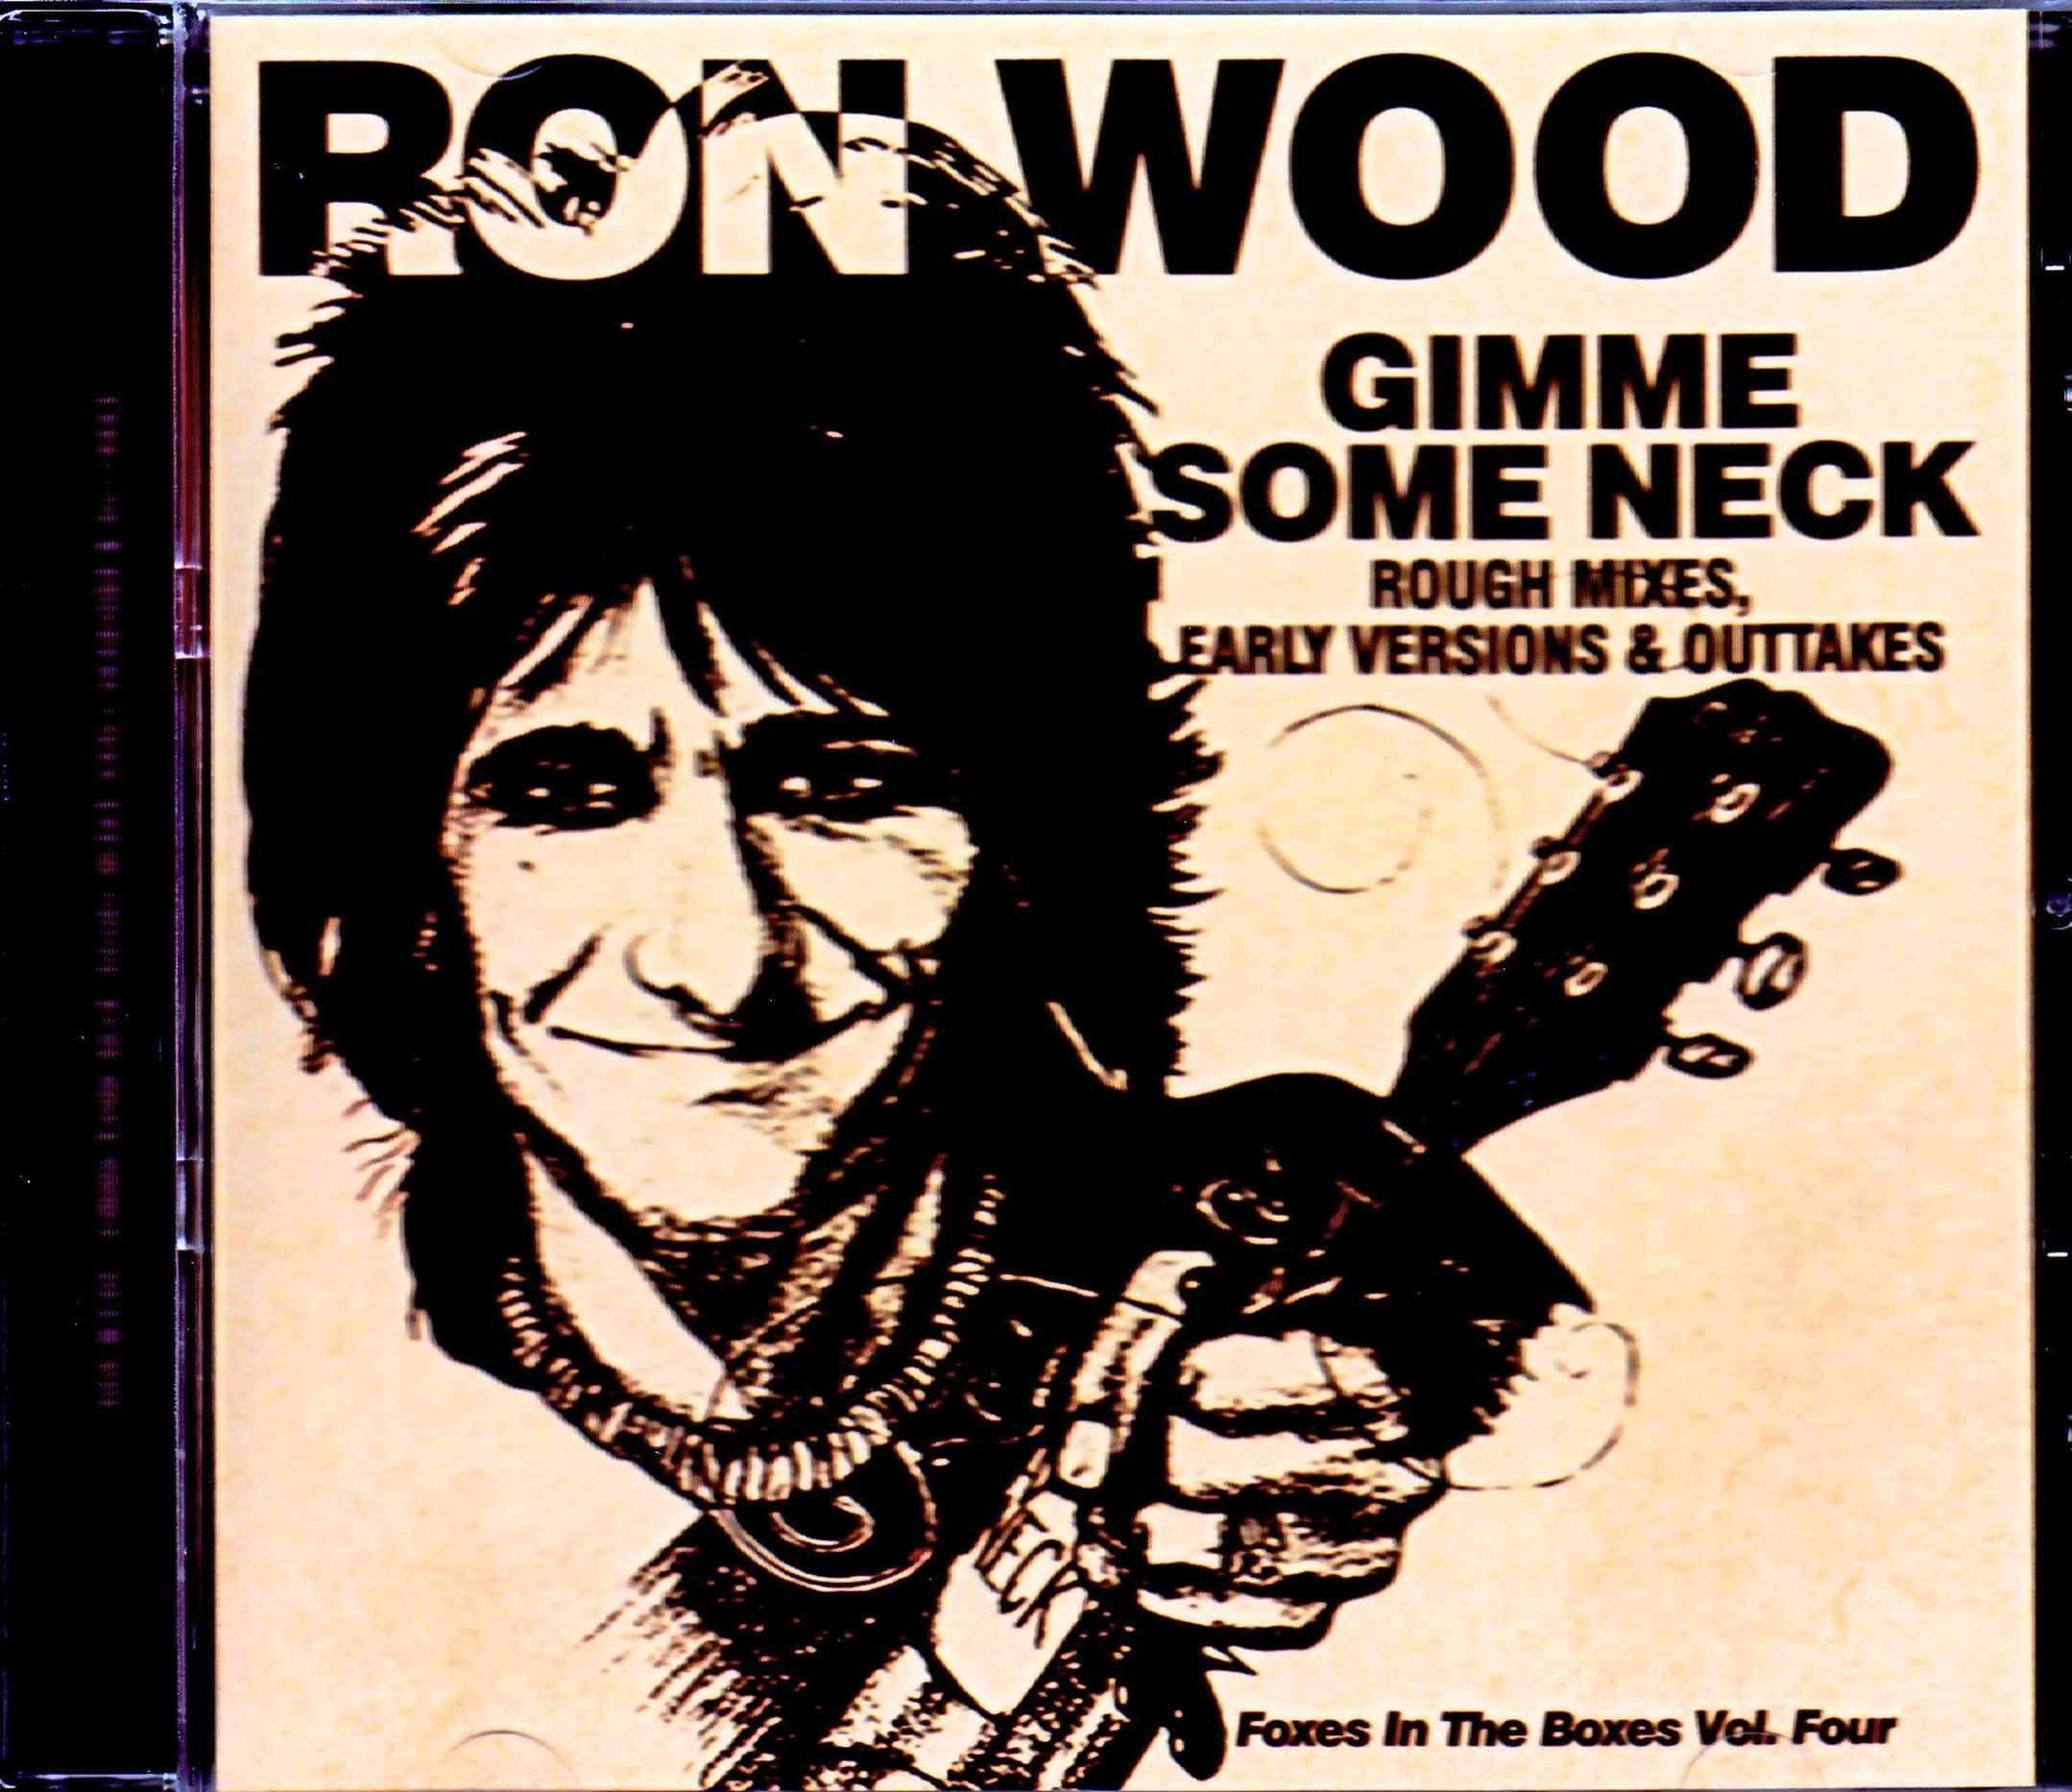 Ron Wood ロン・ウッド/Gimme Some Neck Rough Mixes,Early Versions & Outtakes